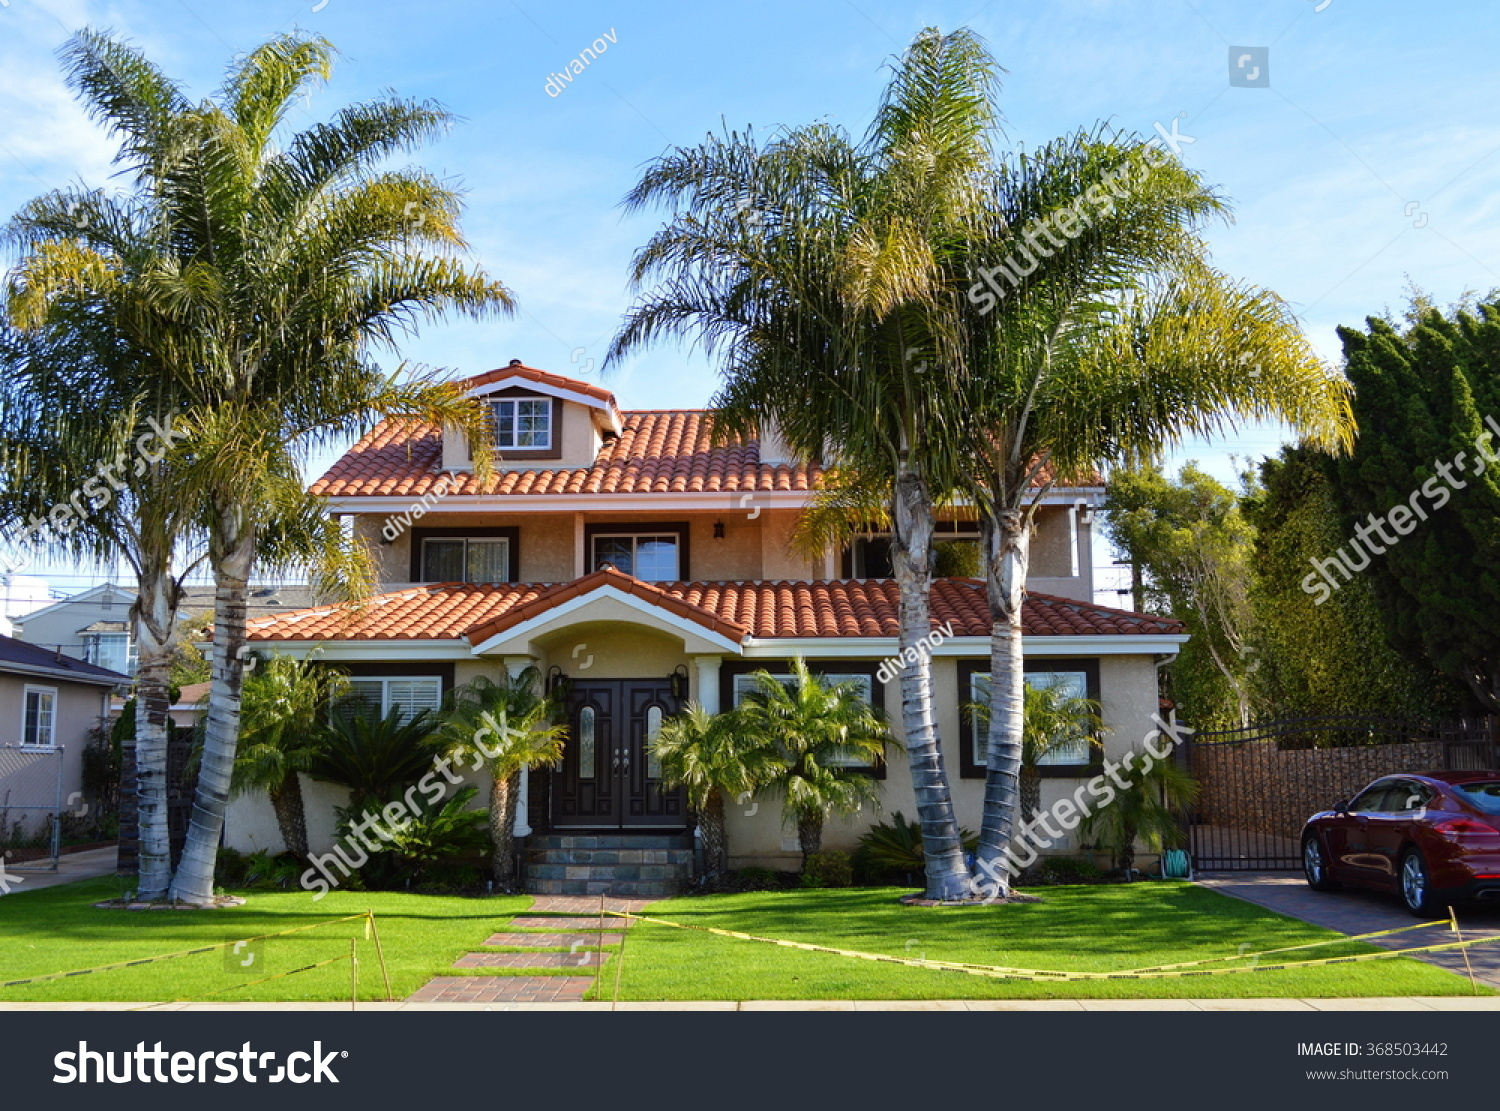 California dream houses estates los angeles stock photo for California los angeles houses